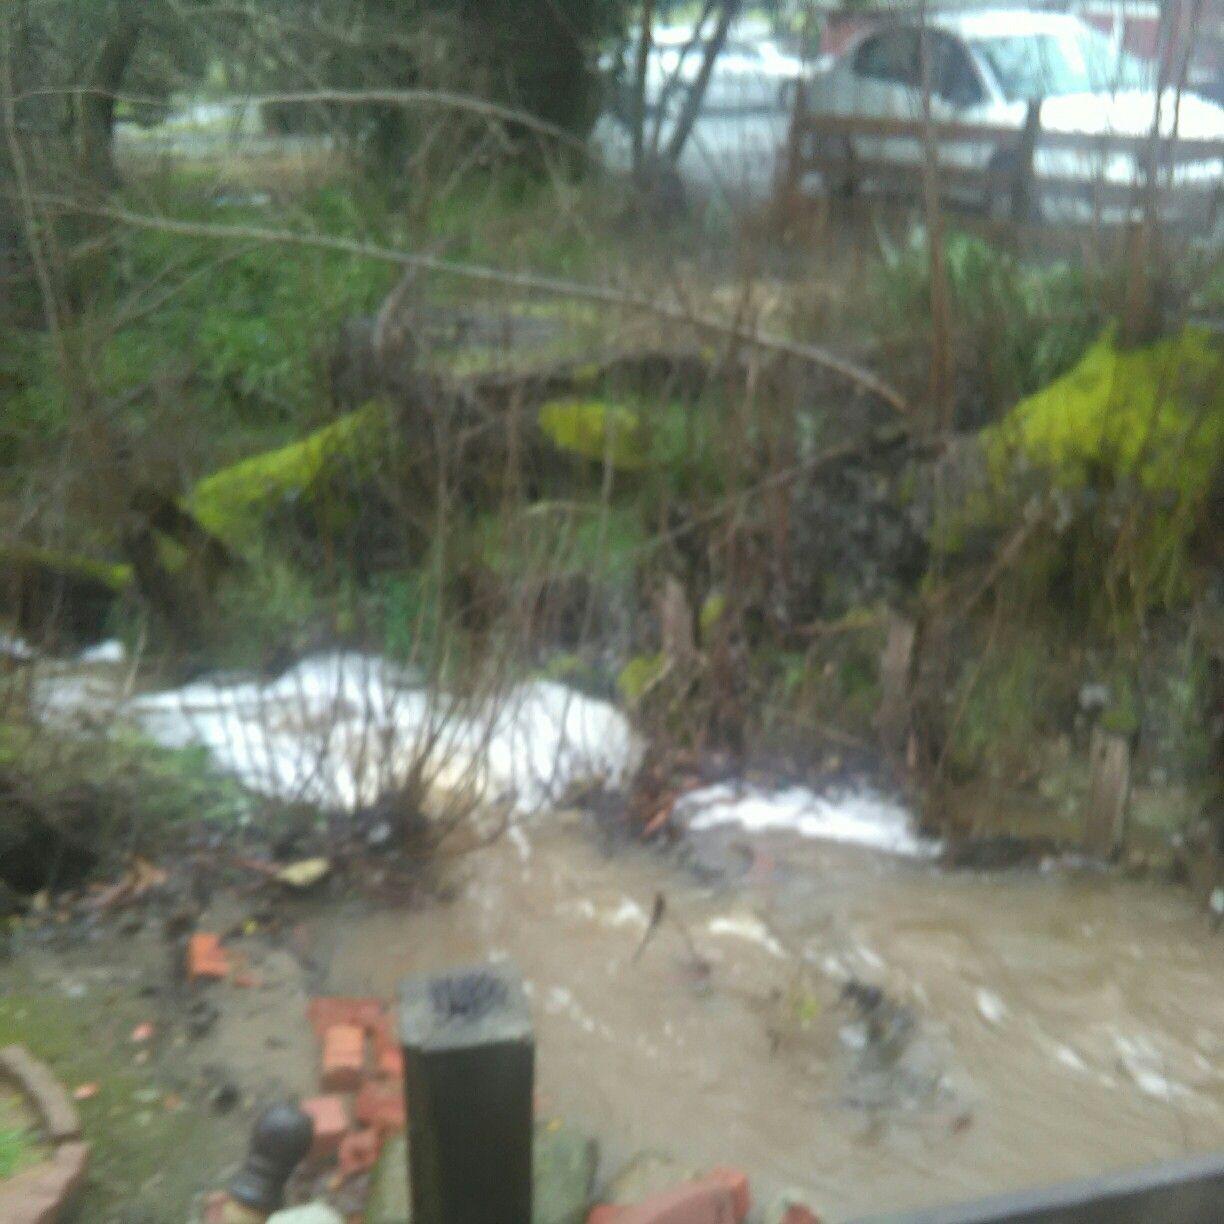 My babbling brook has turned into a rushing river...